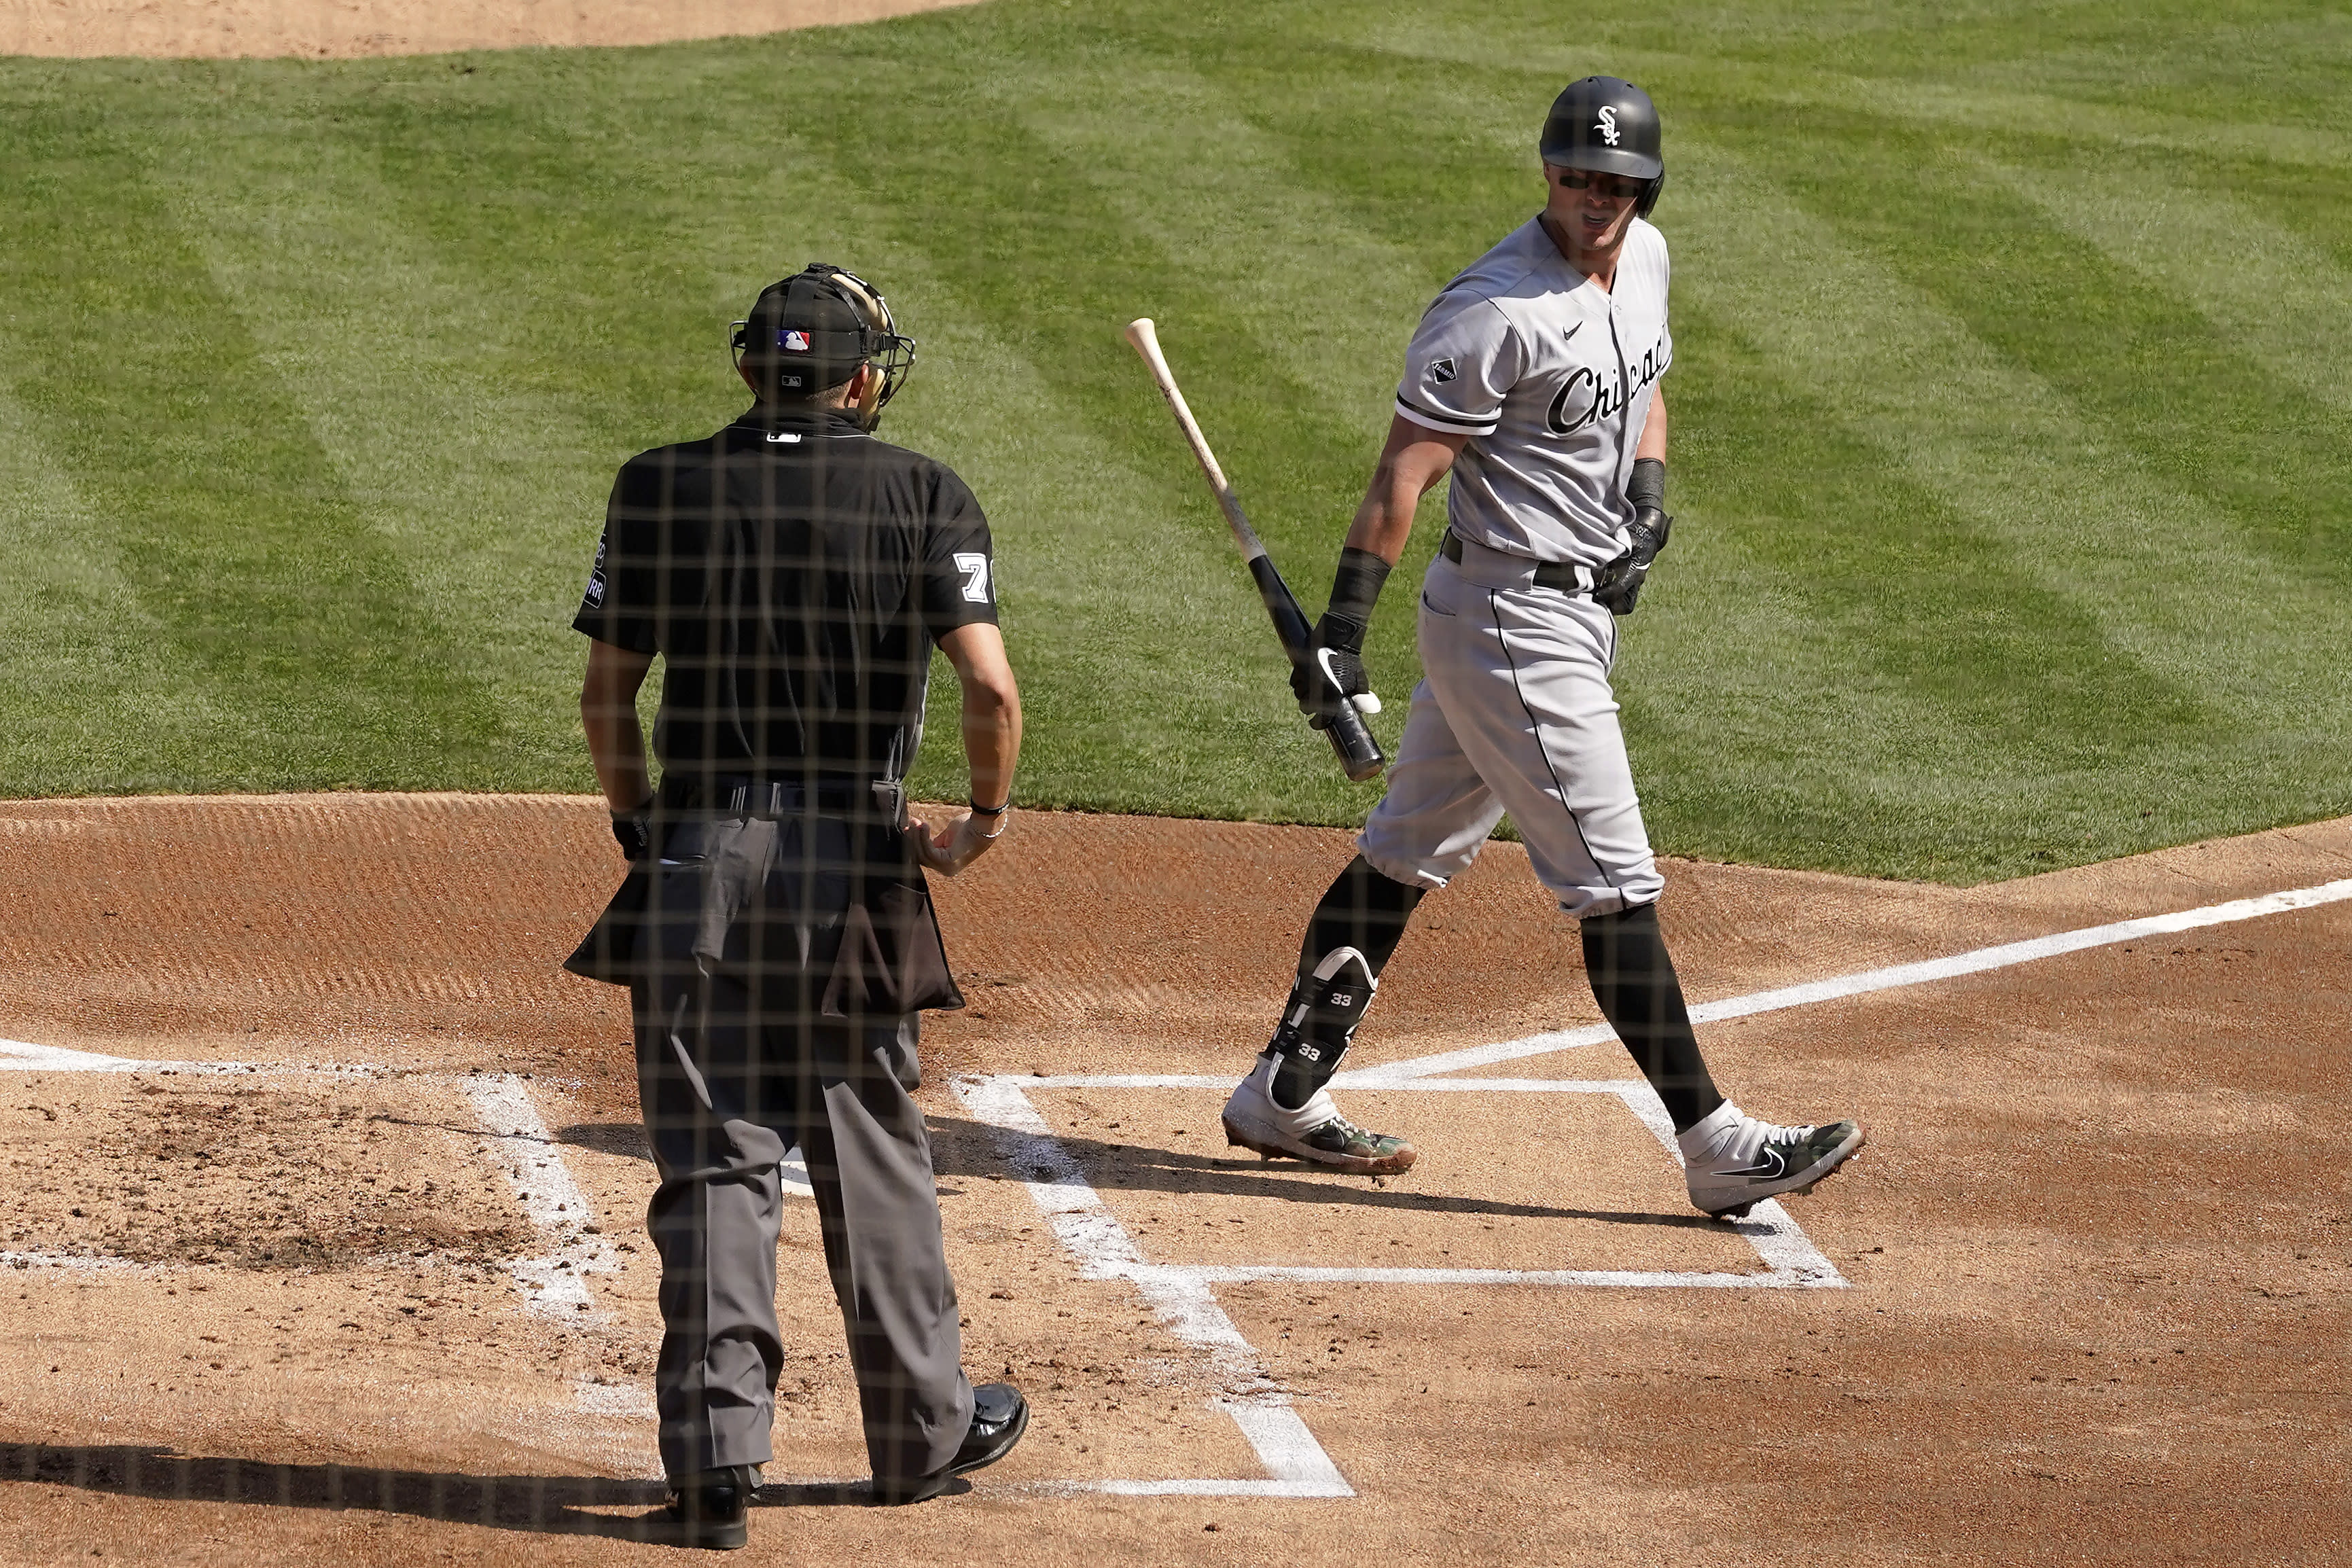 Chicago White Sox's James McCann, right, reacts toward umpire Adam Hamari after striking out against the Oakland Athletics during the first inning of Game 1 of an American League wild-card baseball series Tuesday, Sept. 29, 2020, in Oakland, Calif. (AP Photo/Eric Risberg)